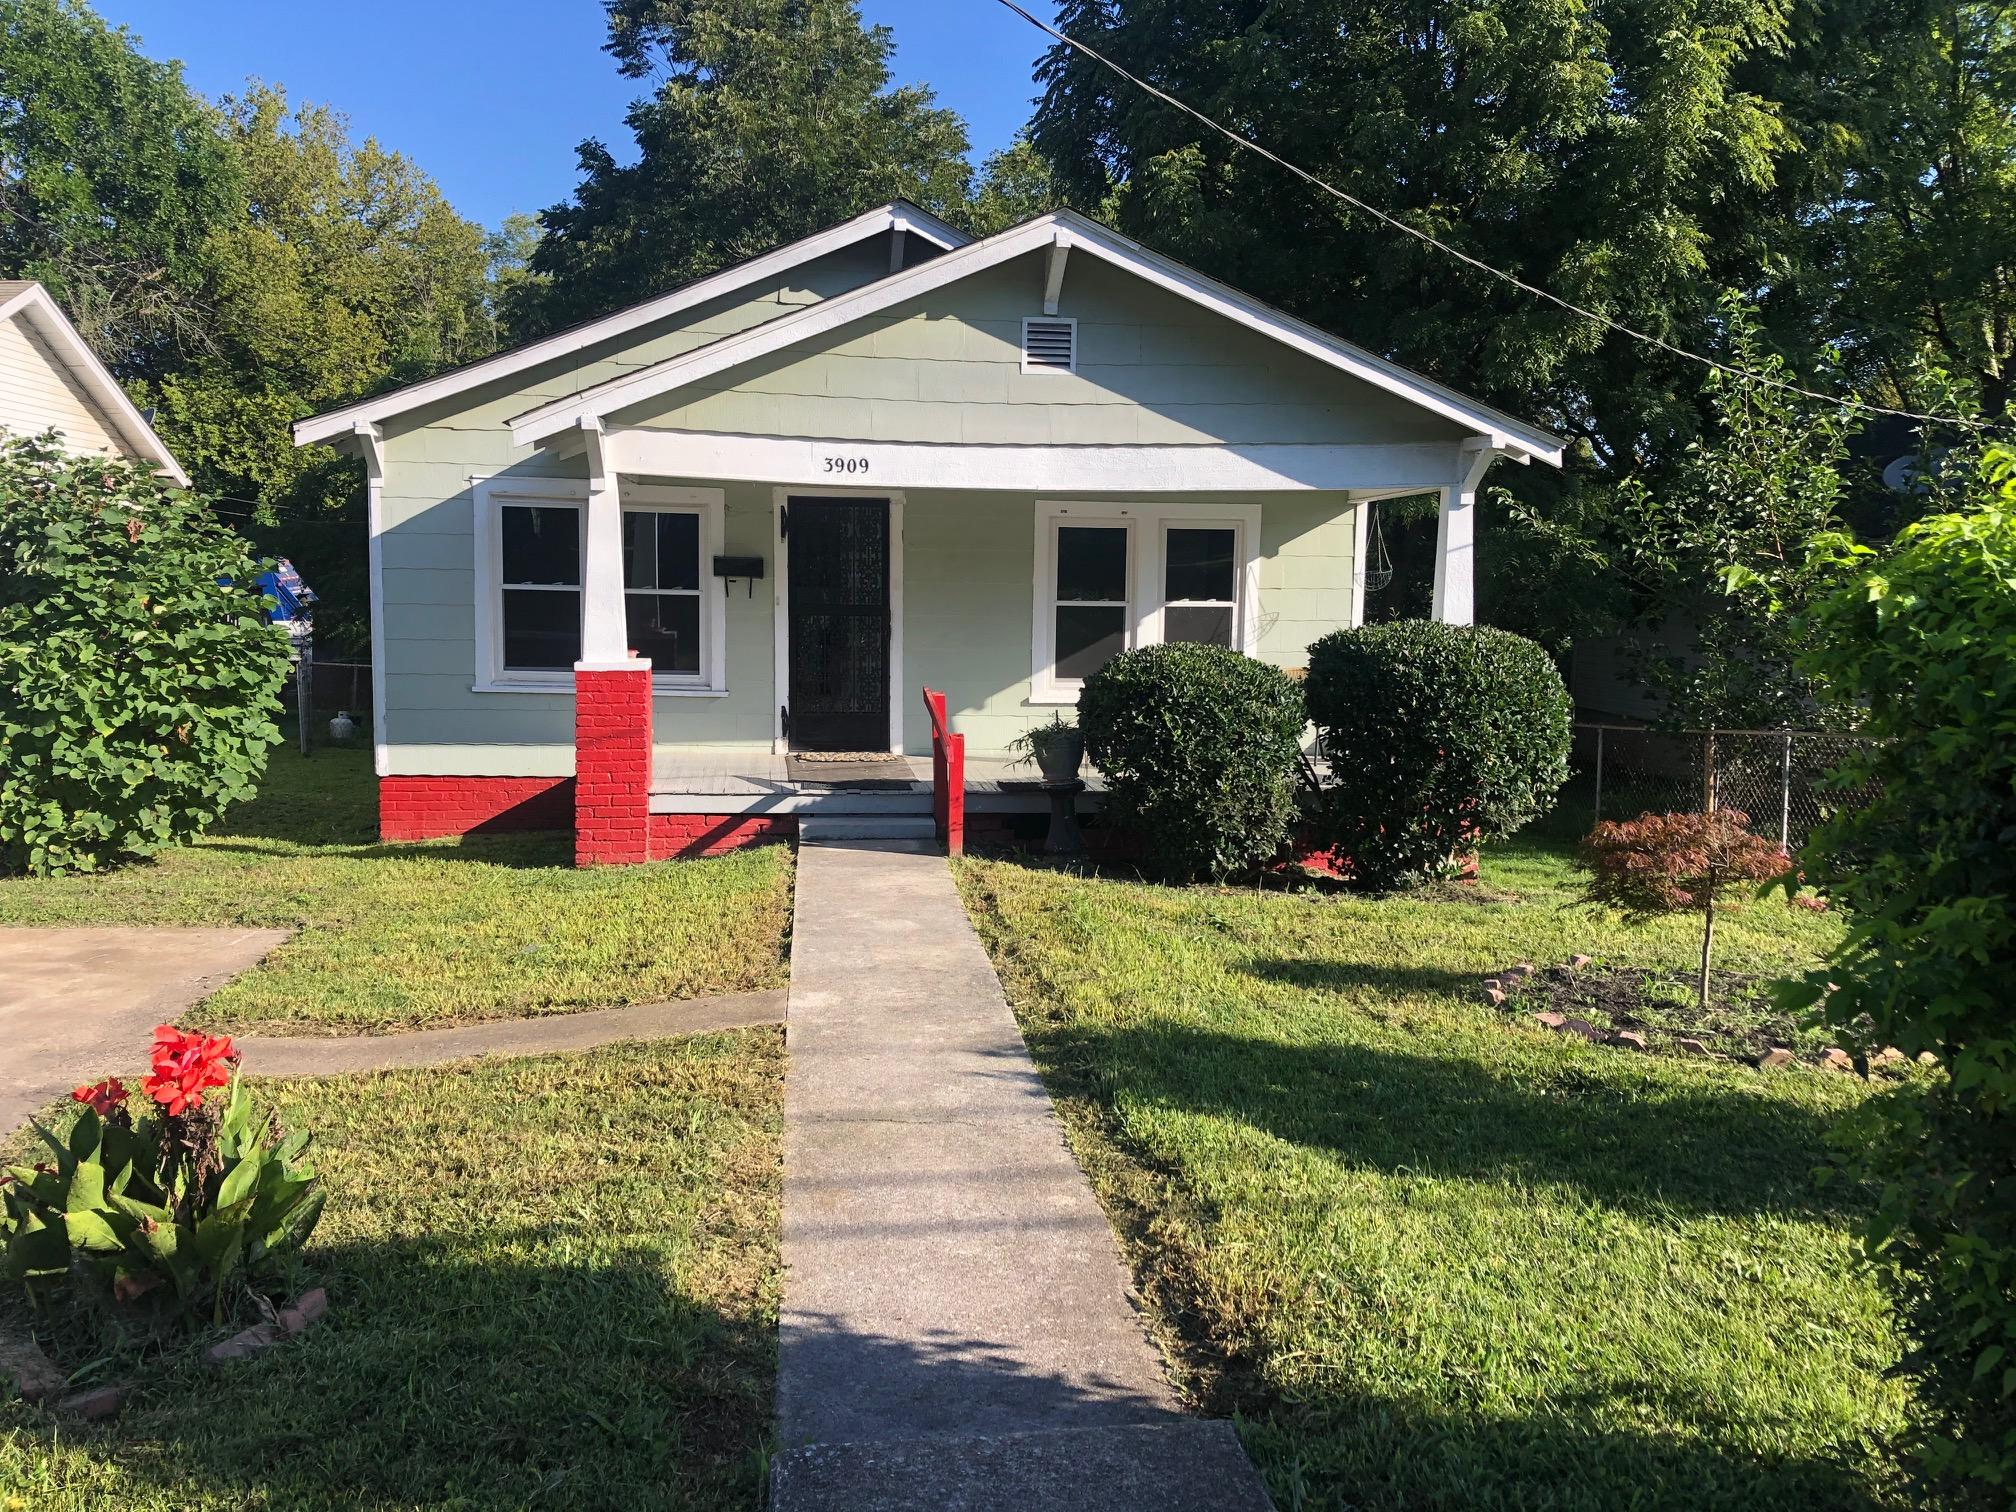 3909 Ivy Ave, Knoxville, Tennessee 37914, 2 Bedrooms Bedrooms, ,1 BathroomBathrooms,Single Family,For Sale,Ivy,1126949